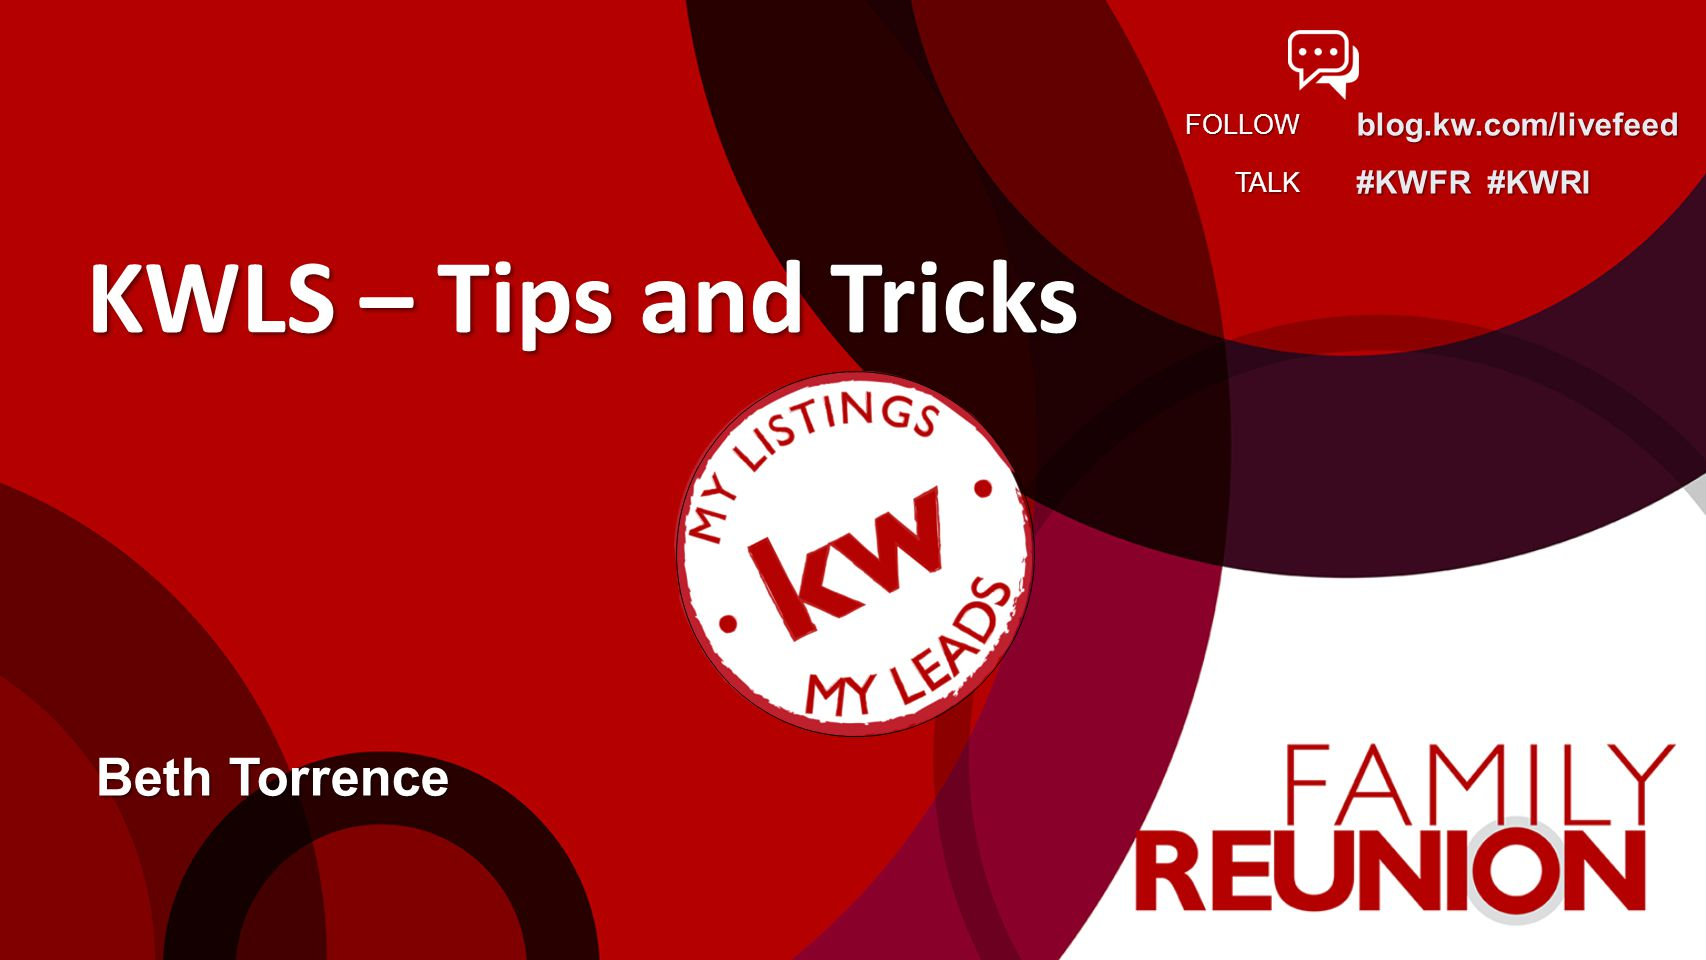 blog.kw.com/livefeed #KWFR #KWRI FOLLOW TALK KWLS – Tips and Tricks Beth Torrence